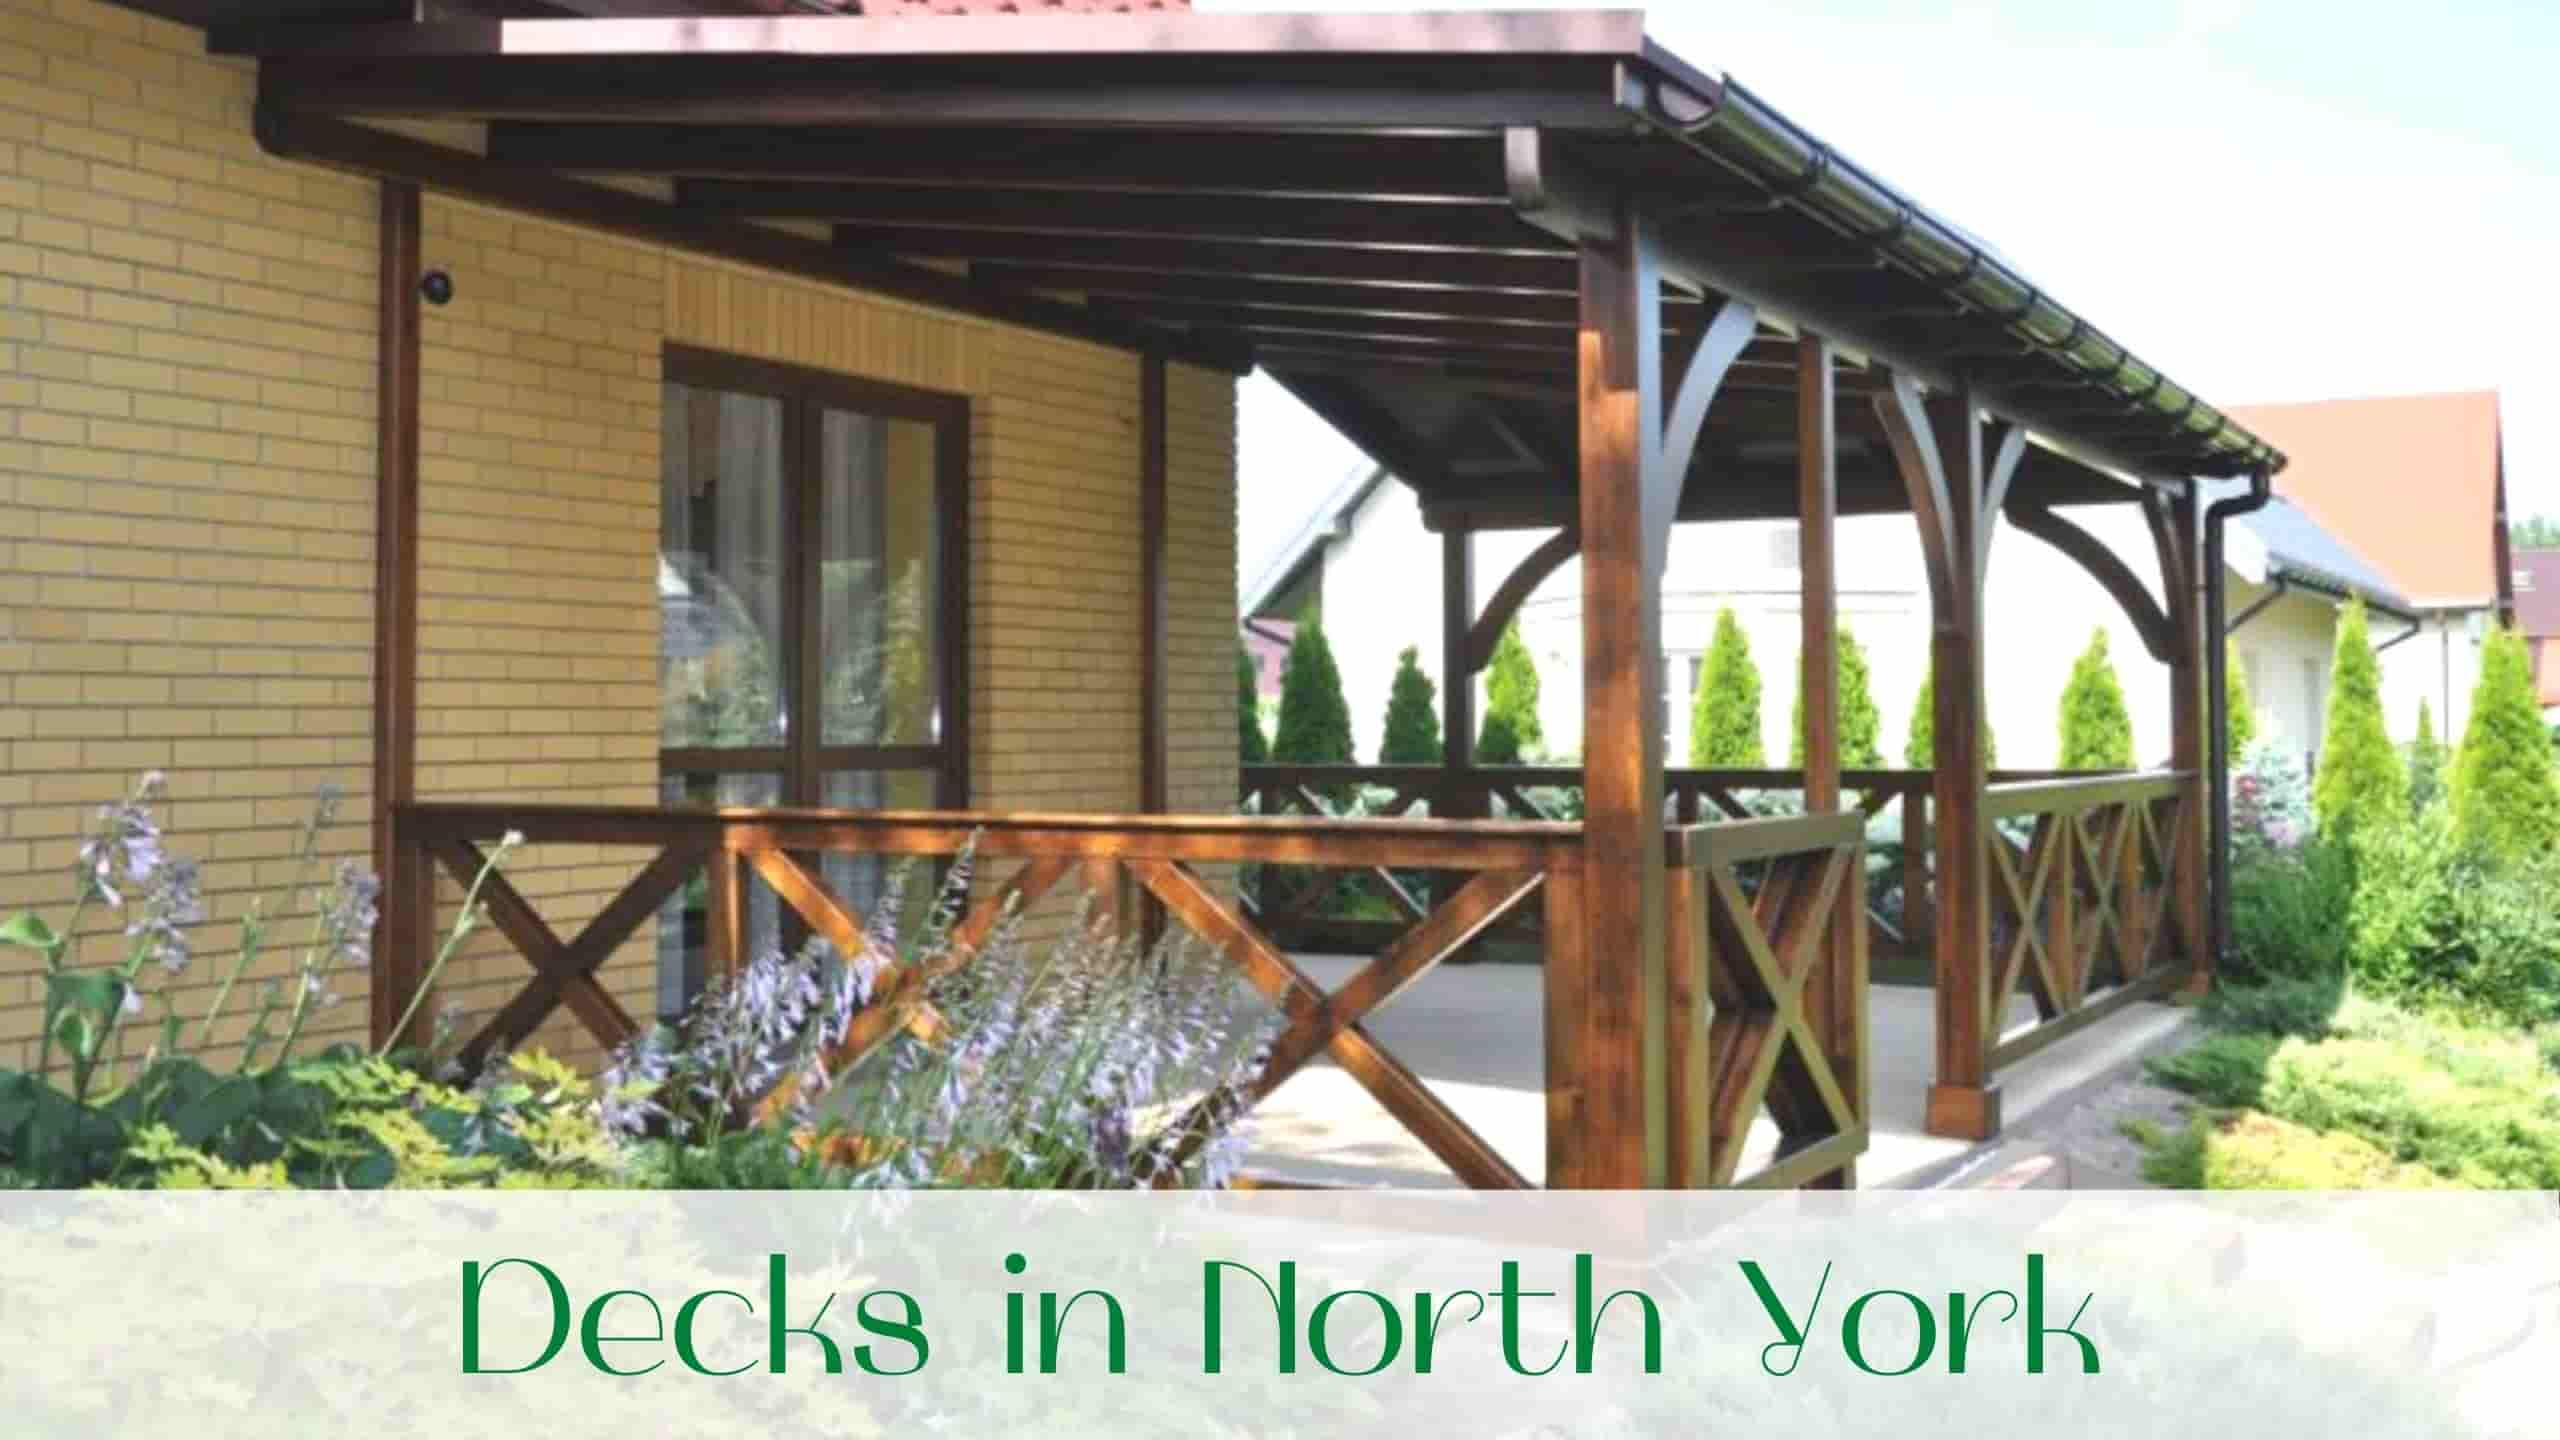 image-Decks-in-North-York